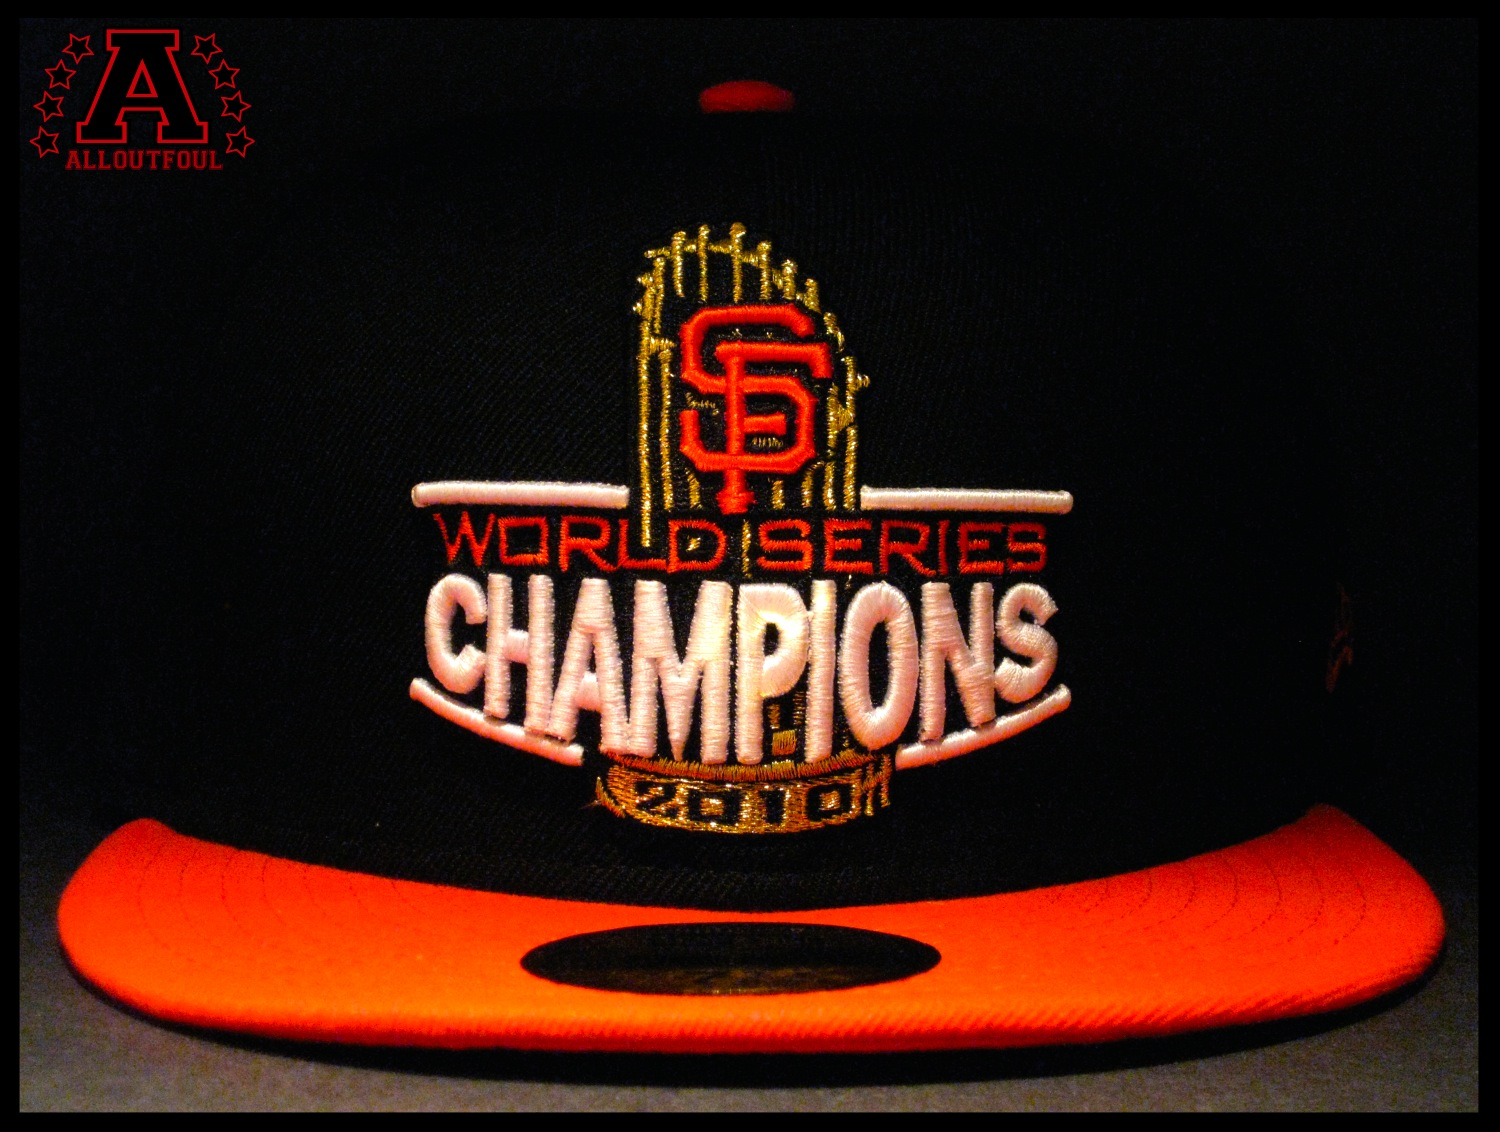 San Francisco Giants Hat 34825 High Resolution download all 1500x1132